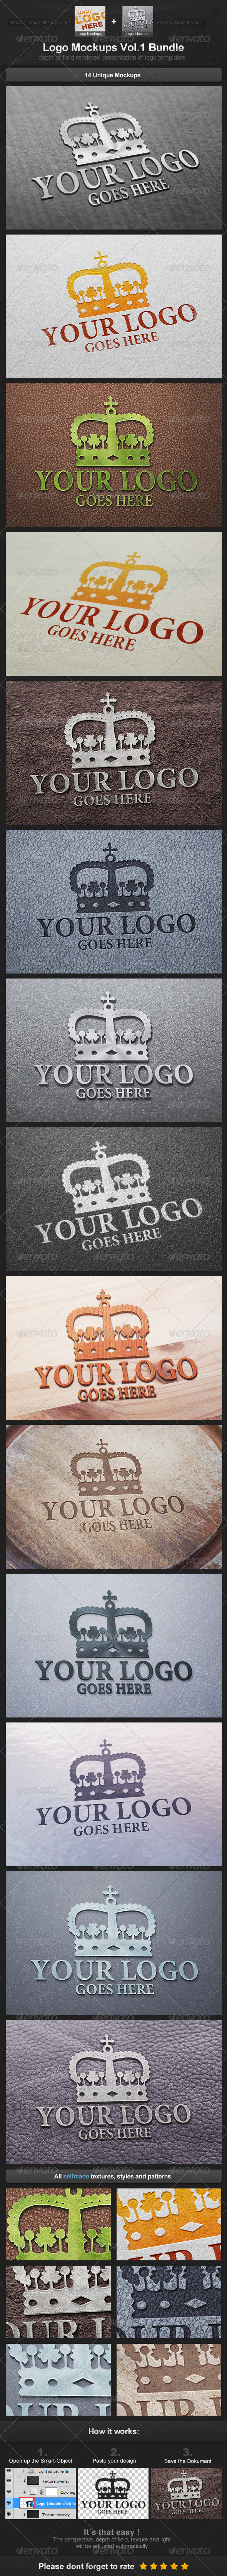 Logo Mockups Vol.1 Bundle - Logo Product Mock-Ups